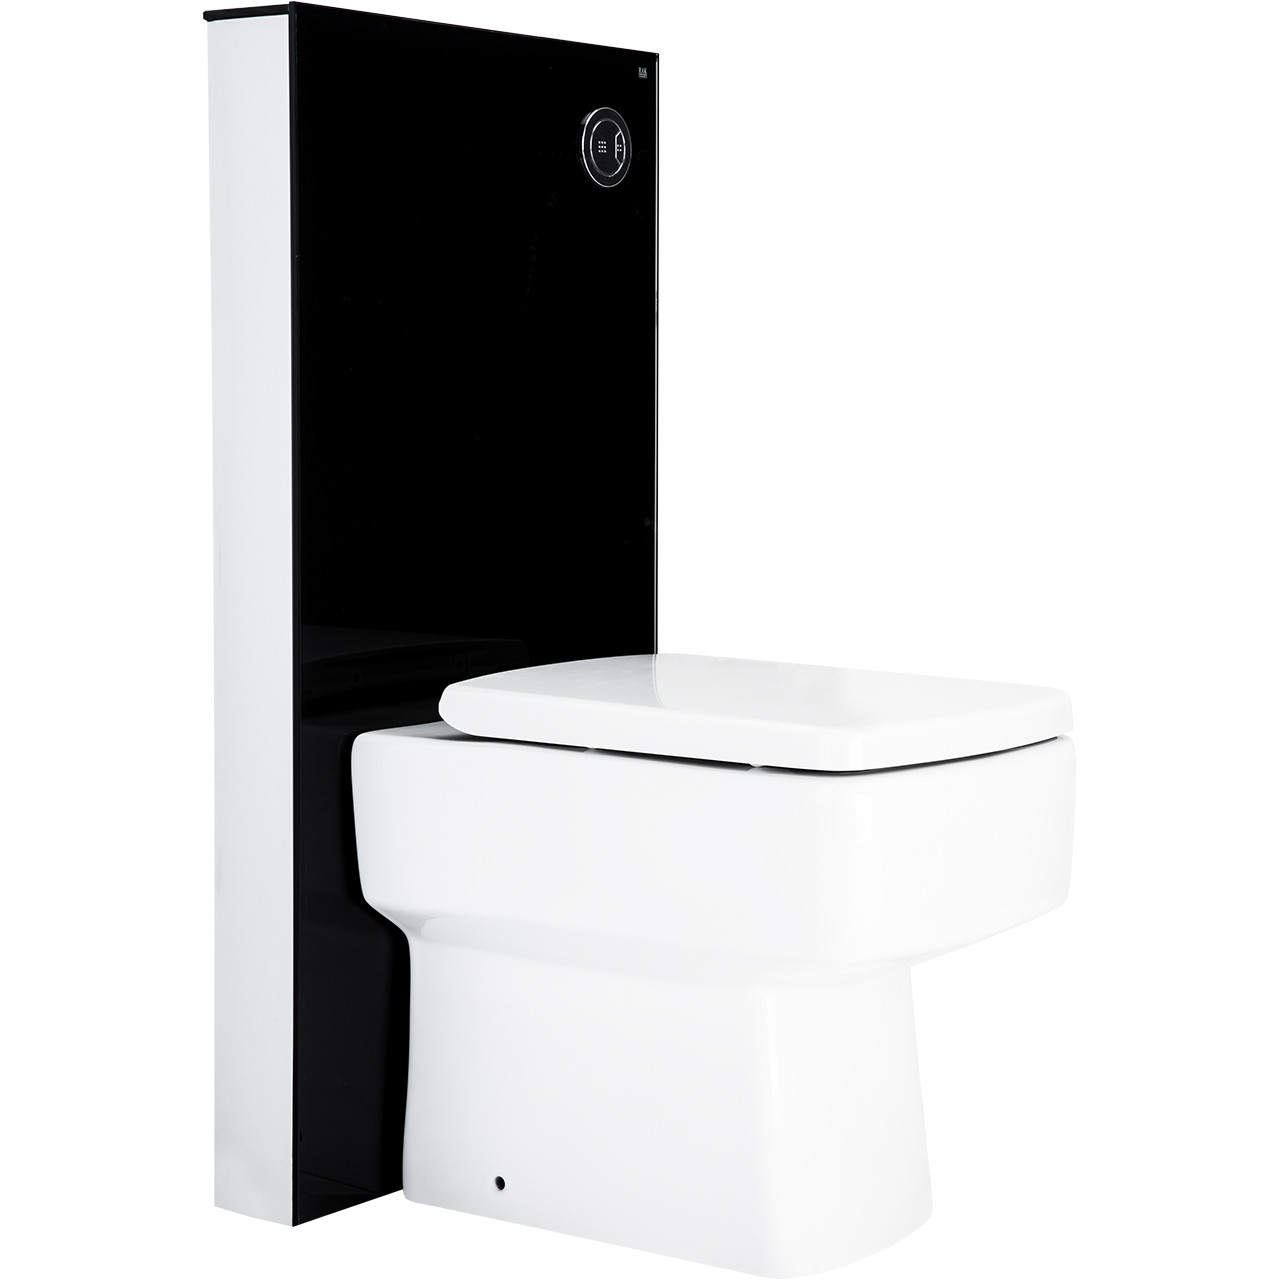 Crystal Obelisk Floor Standing Cistern Cabinet for BTW Pan in Black Side